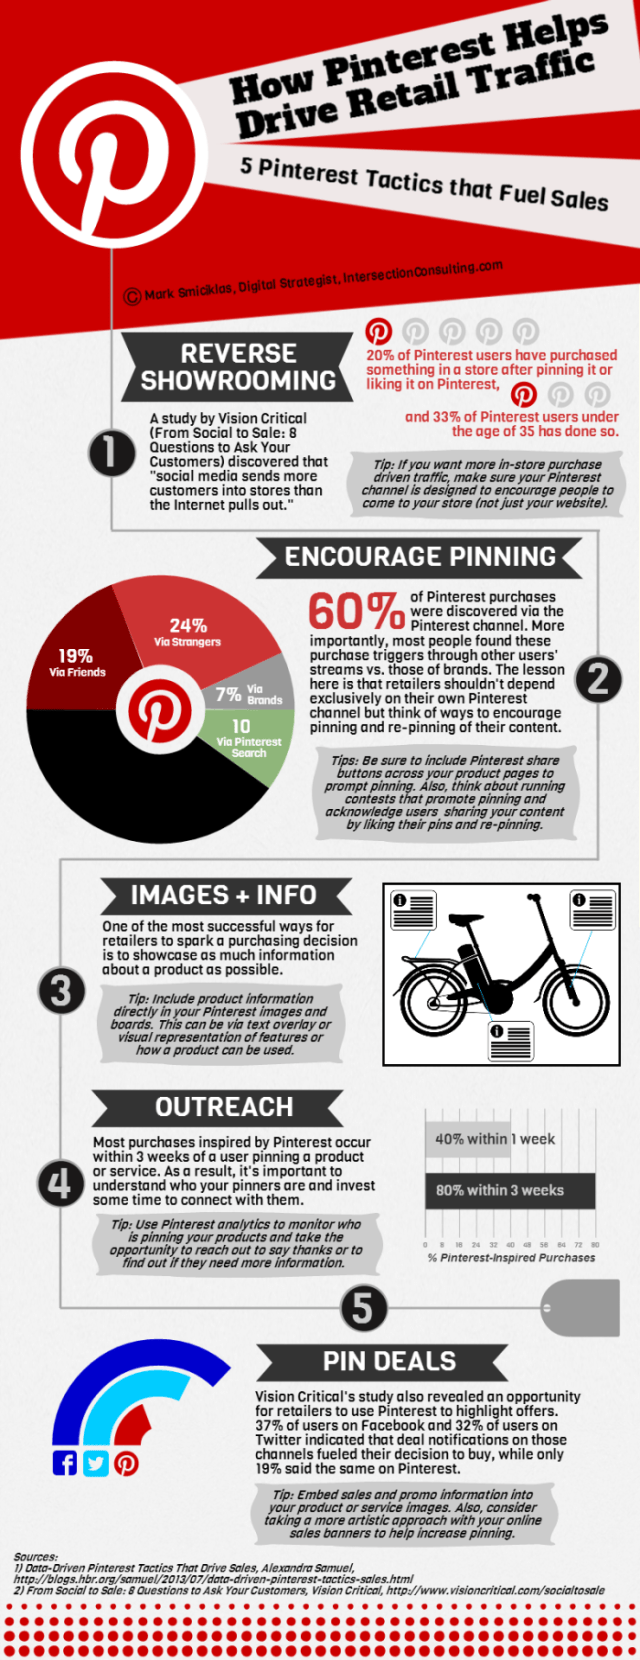 How pinterest drives retail traffic infographic for Sales marketing tactics